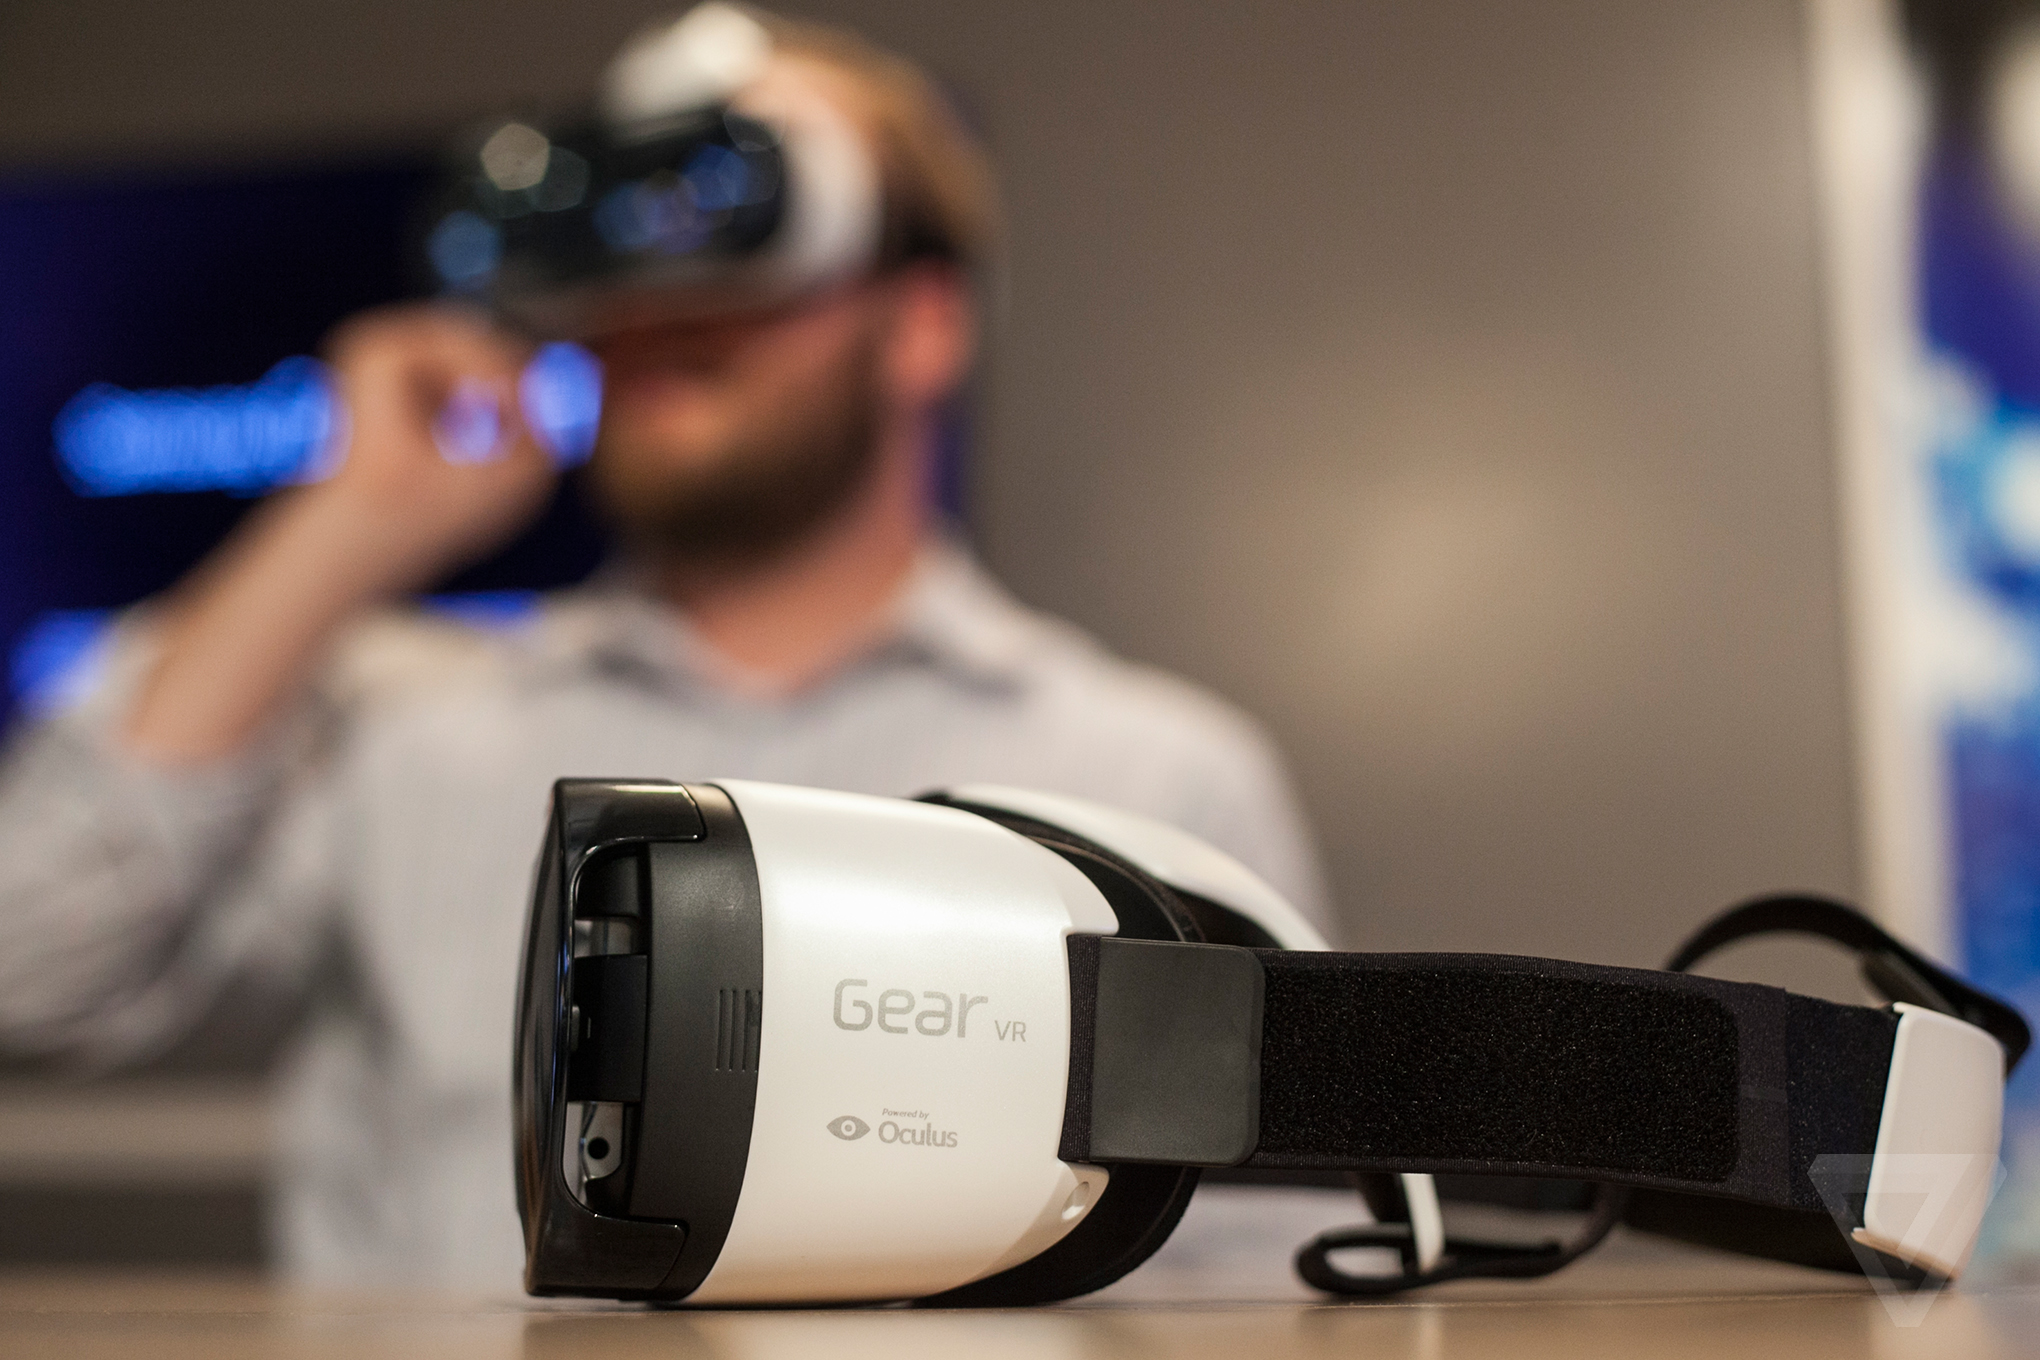 Samsung is keeping the Gear VR in stasis, and that might be